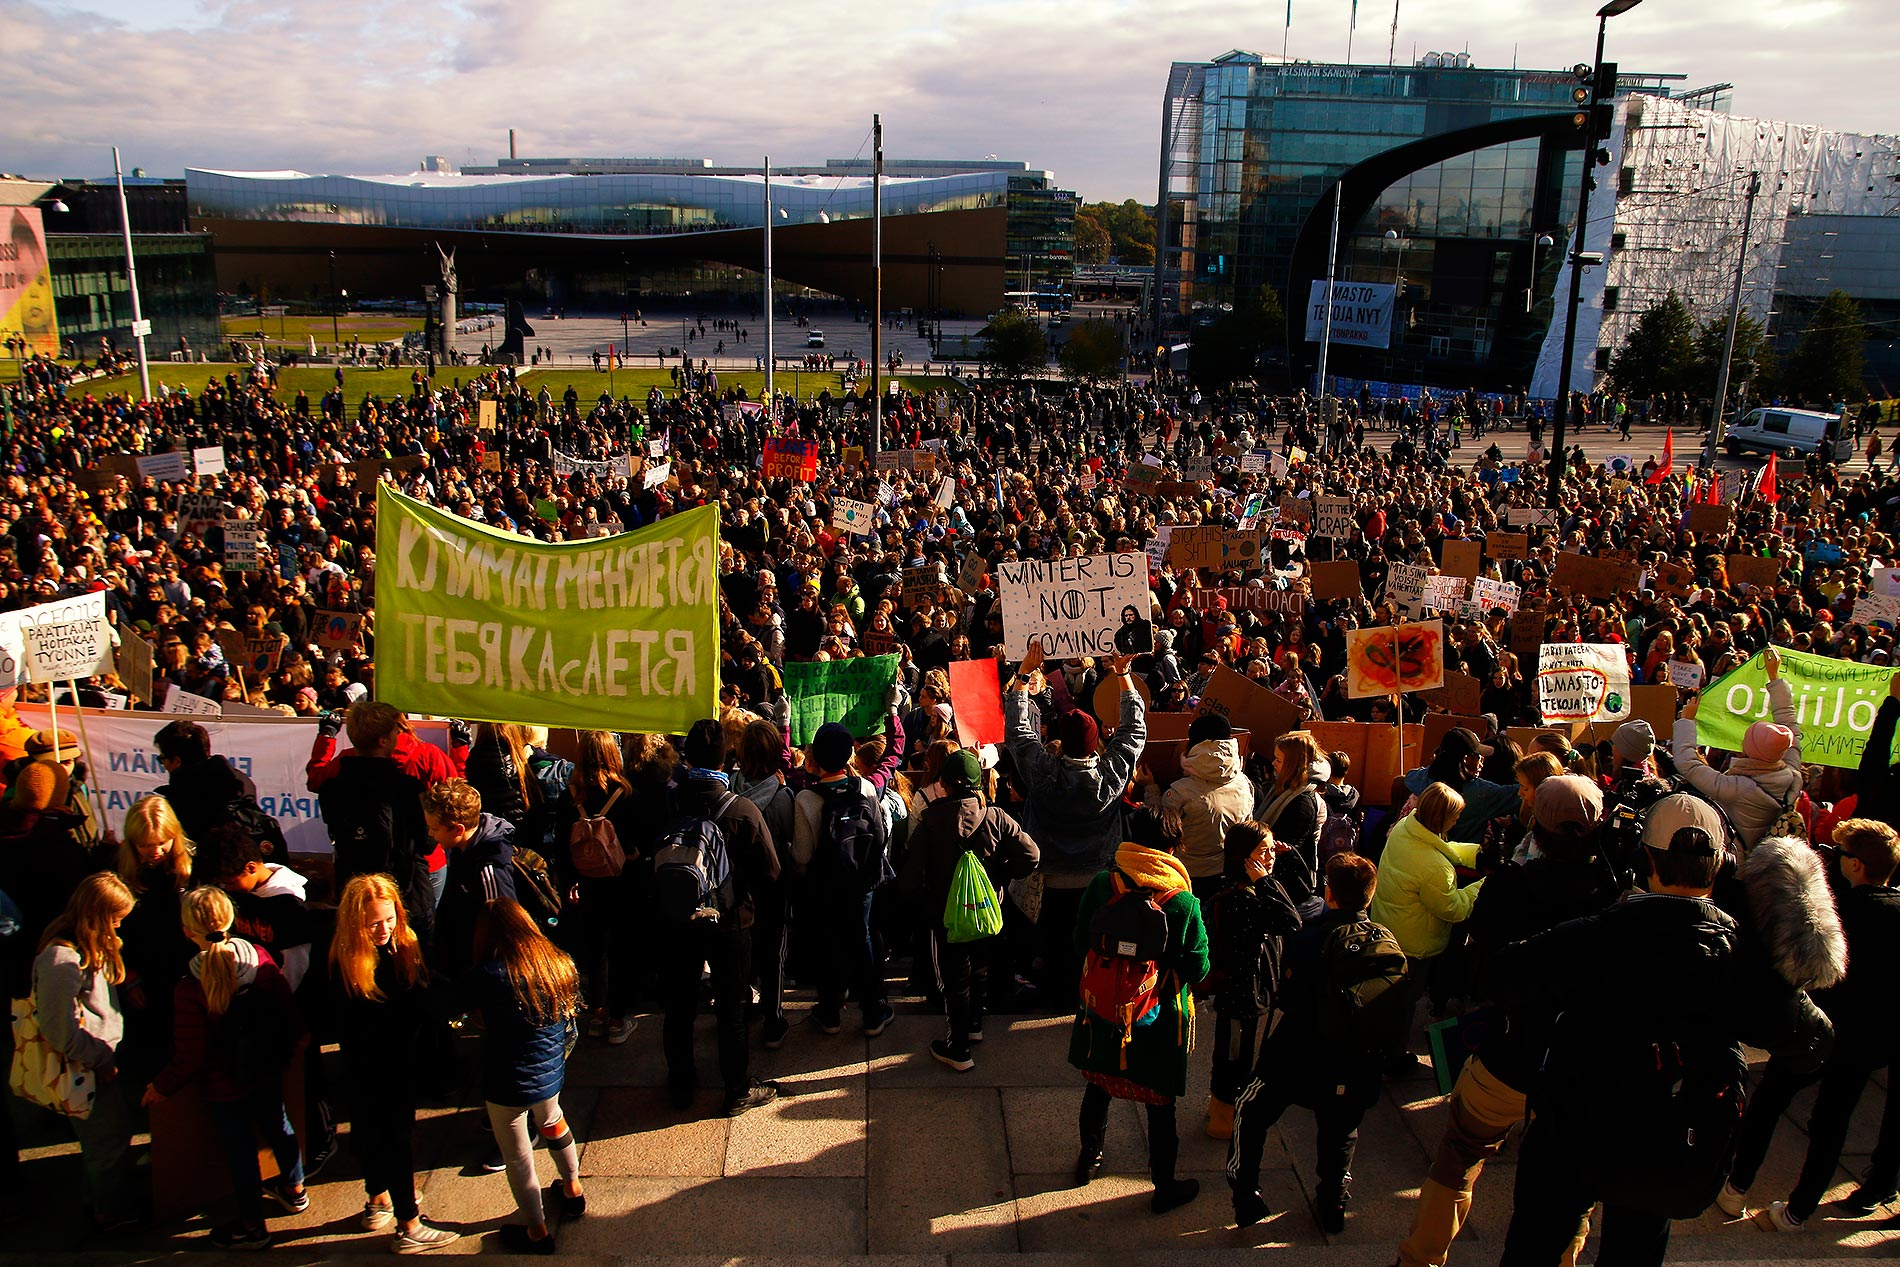 Thousands joined the protest. Picture: Tony Öhberg for Finland Today